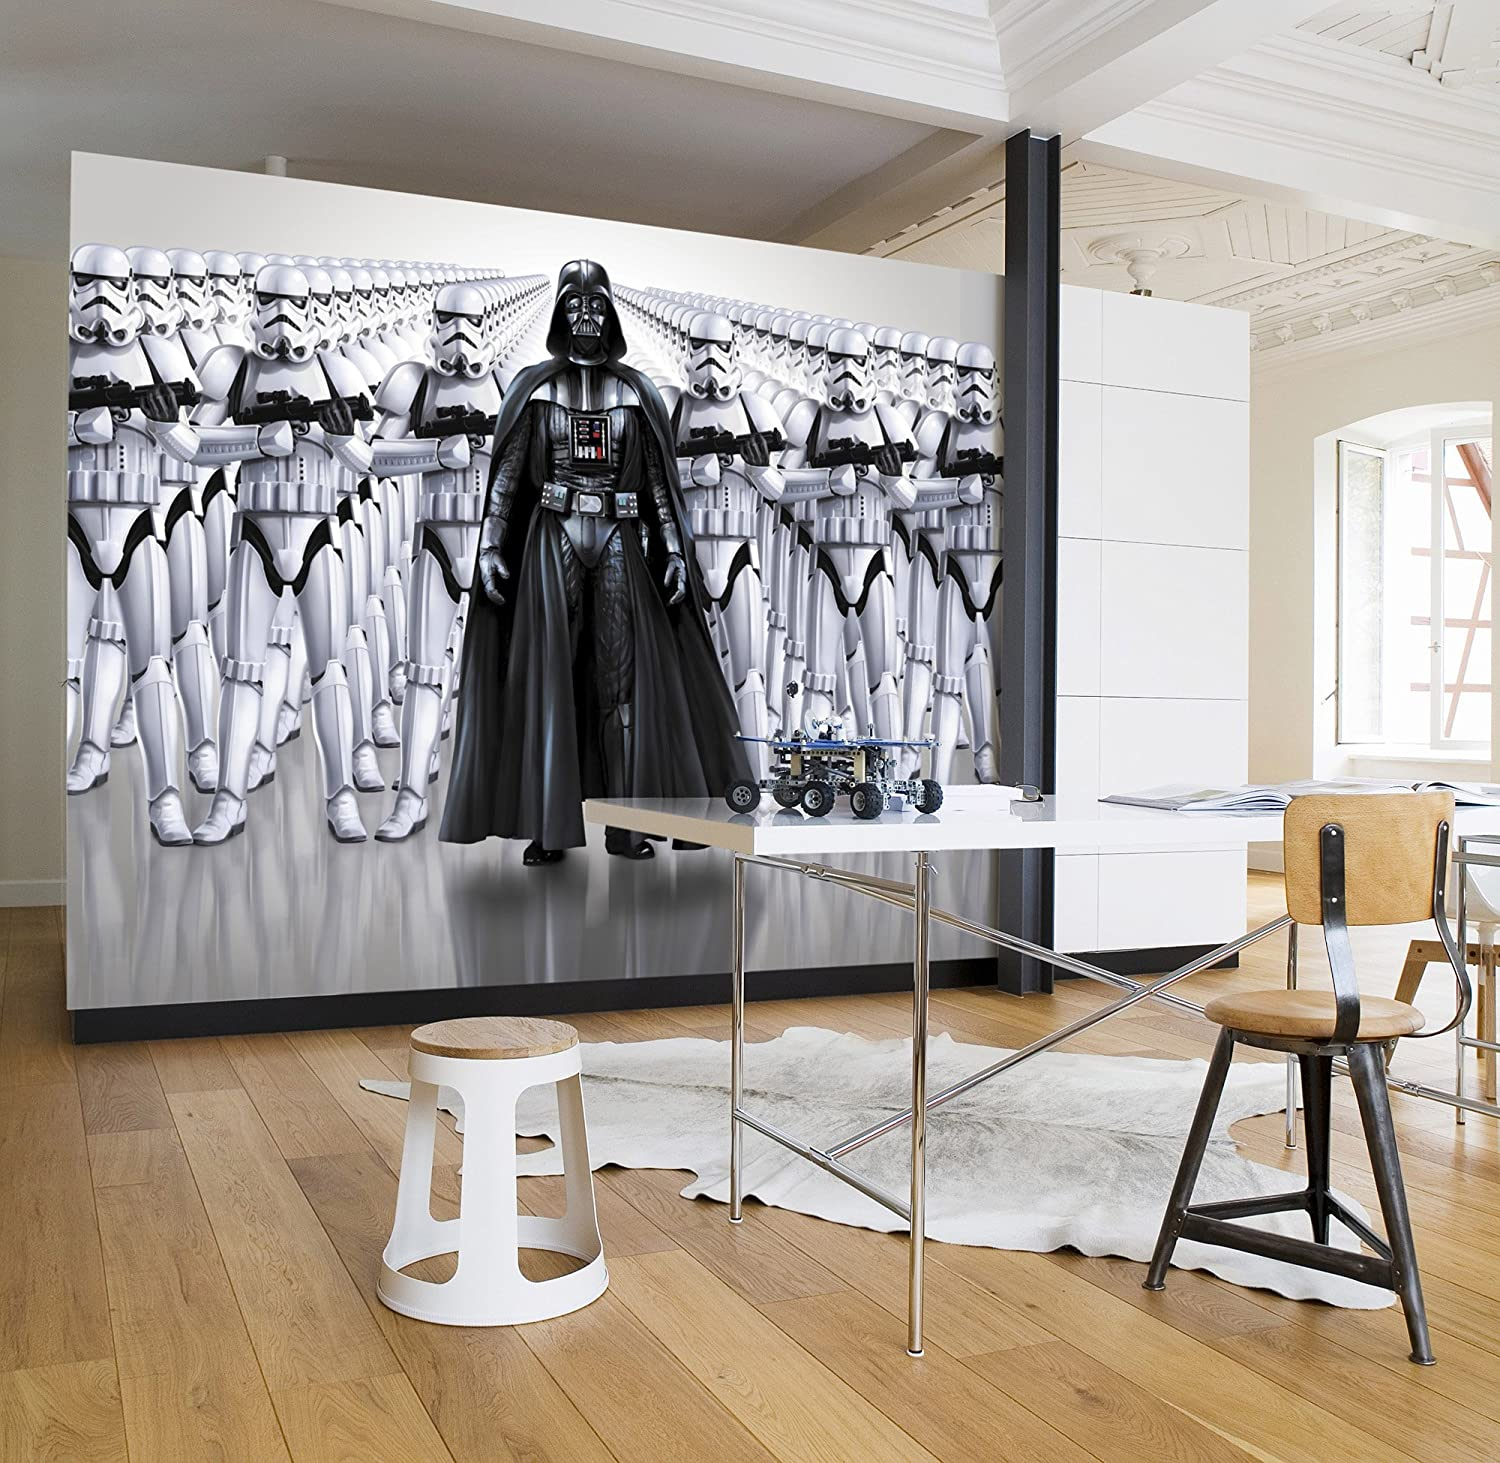 Komar Star Wars Imperial Force Darth Vader Stormtrooper Wallpaper Mural Vinyl Black White 368x0 2x254 Cm Amazon Co Uk Kitchen Home